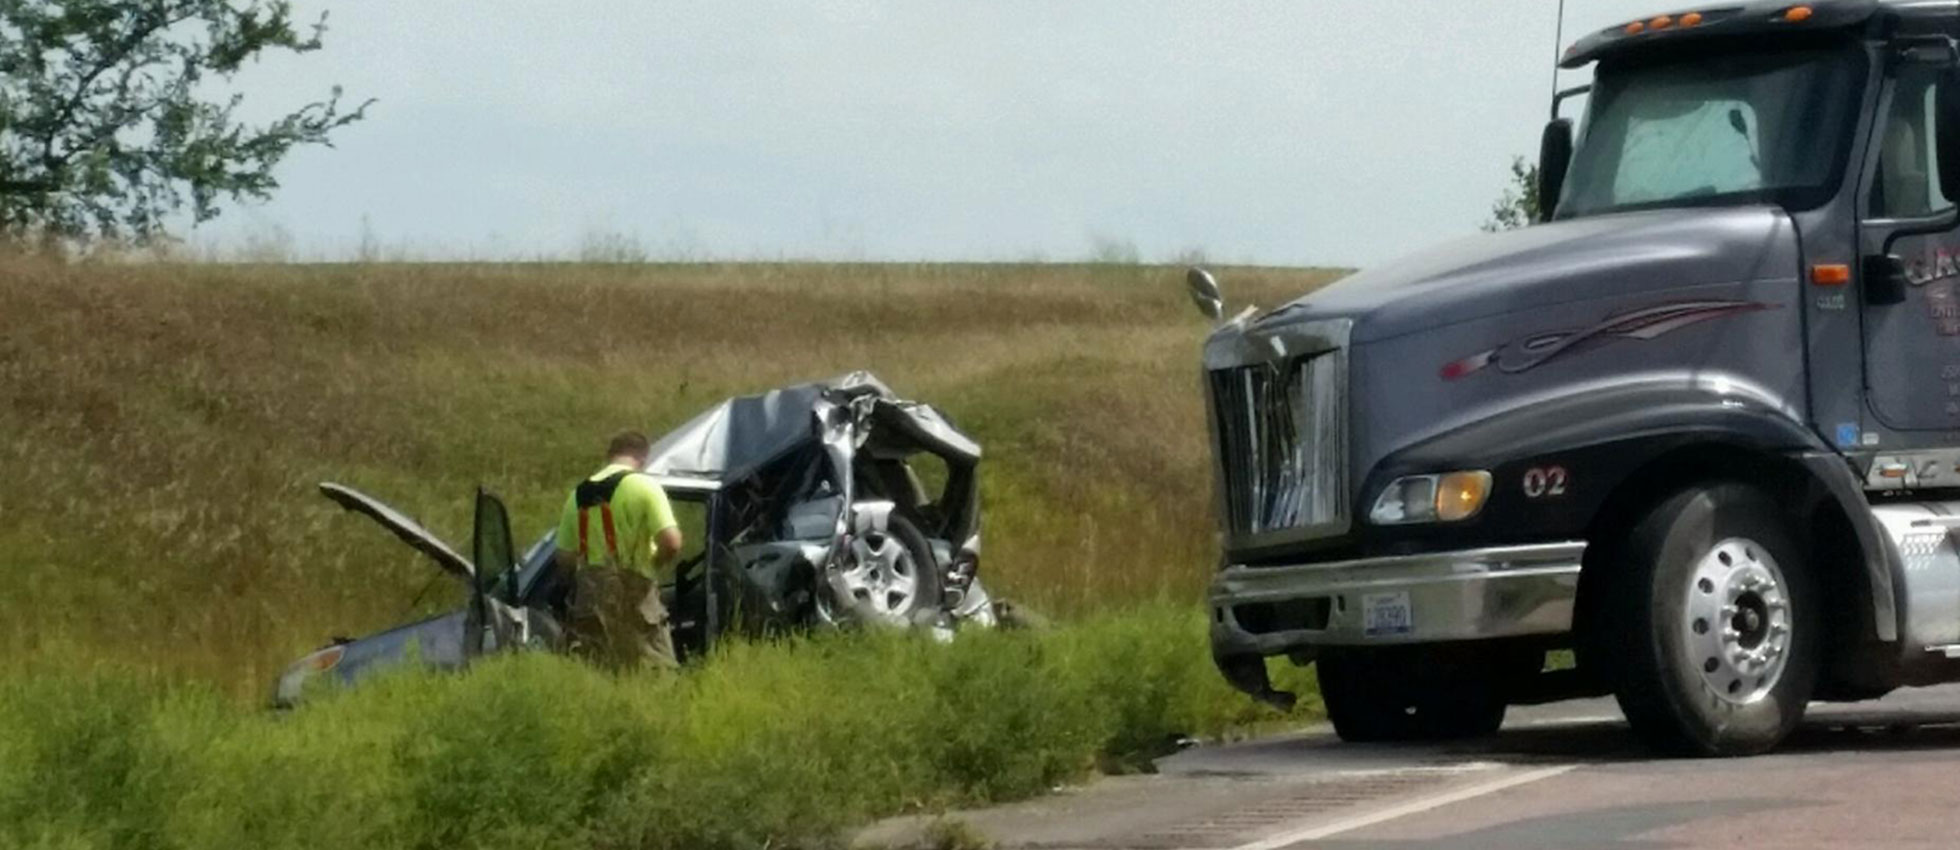 South Dakota Car Crash August